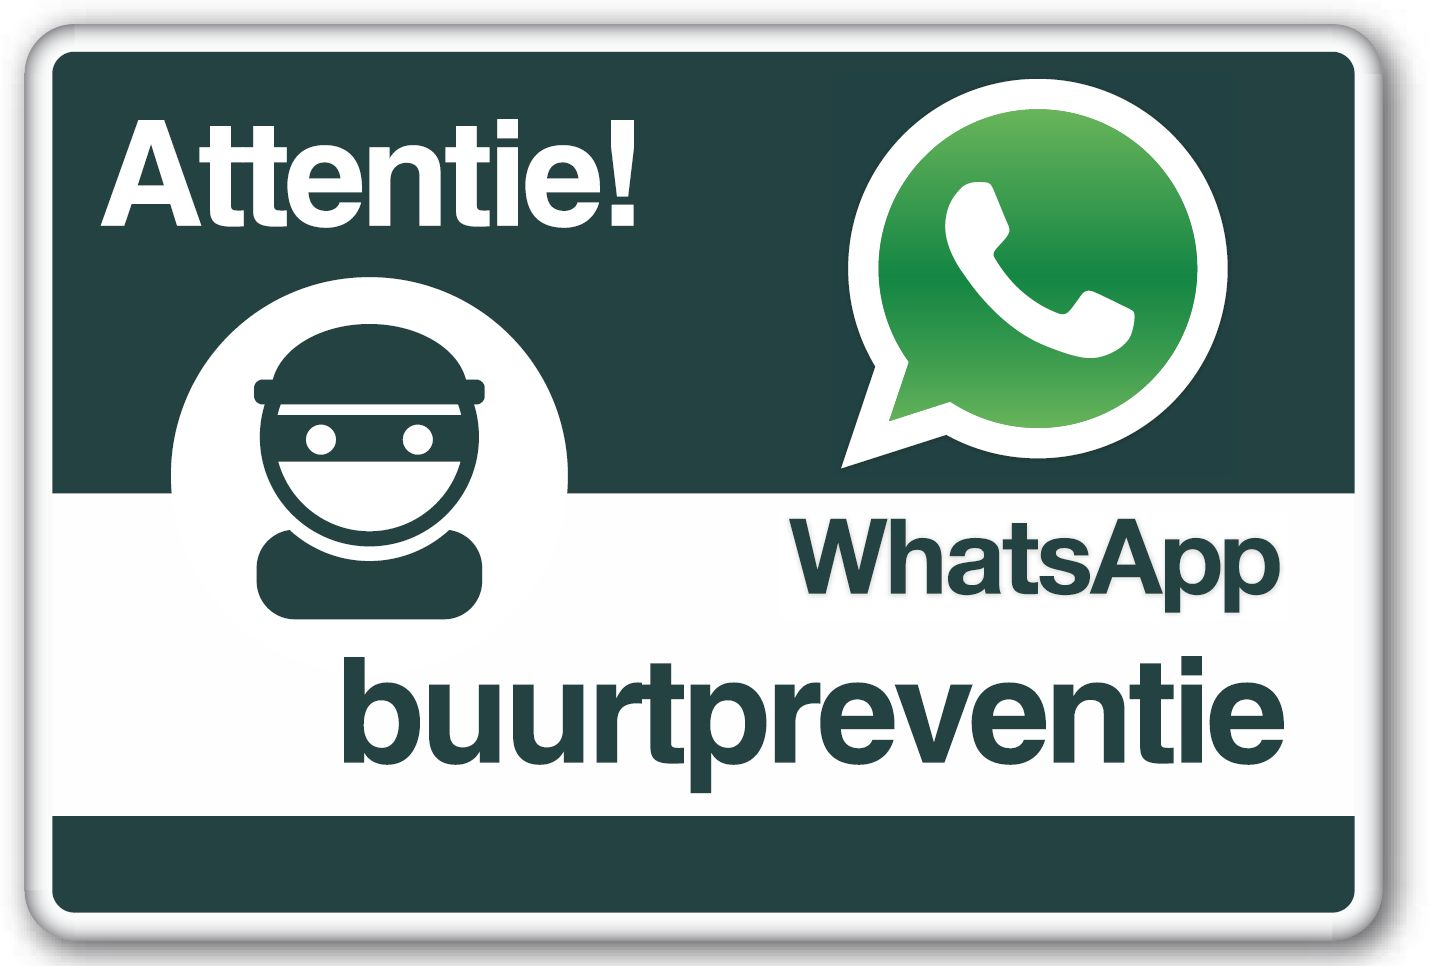 WhatsApp Web Version in the Works - App to Launch Soon